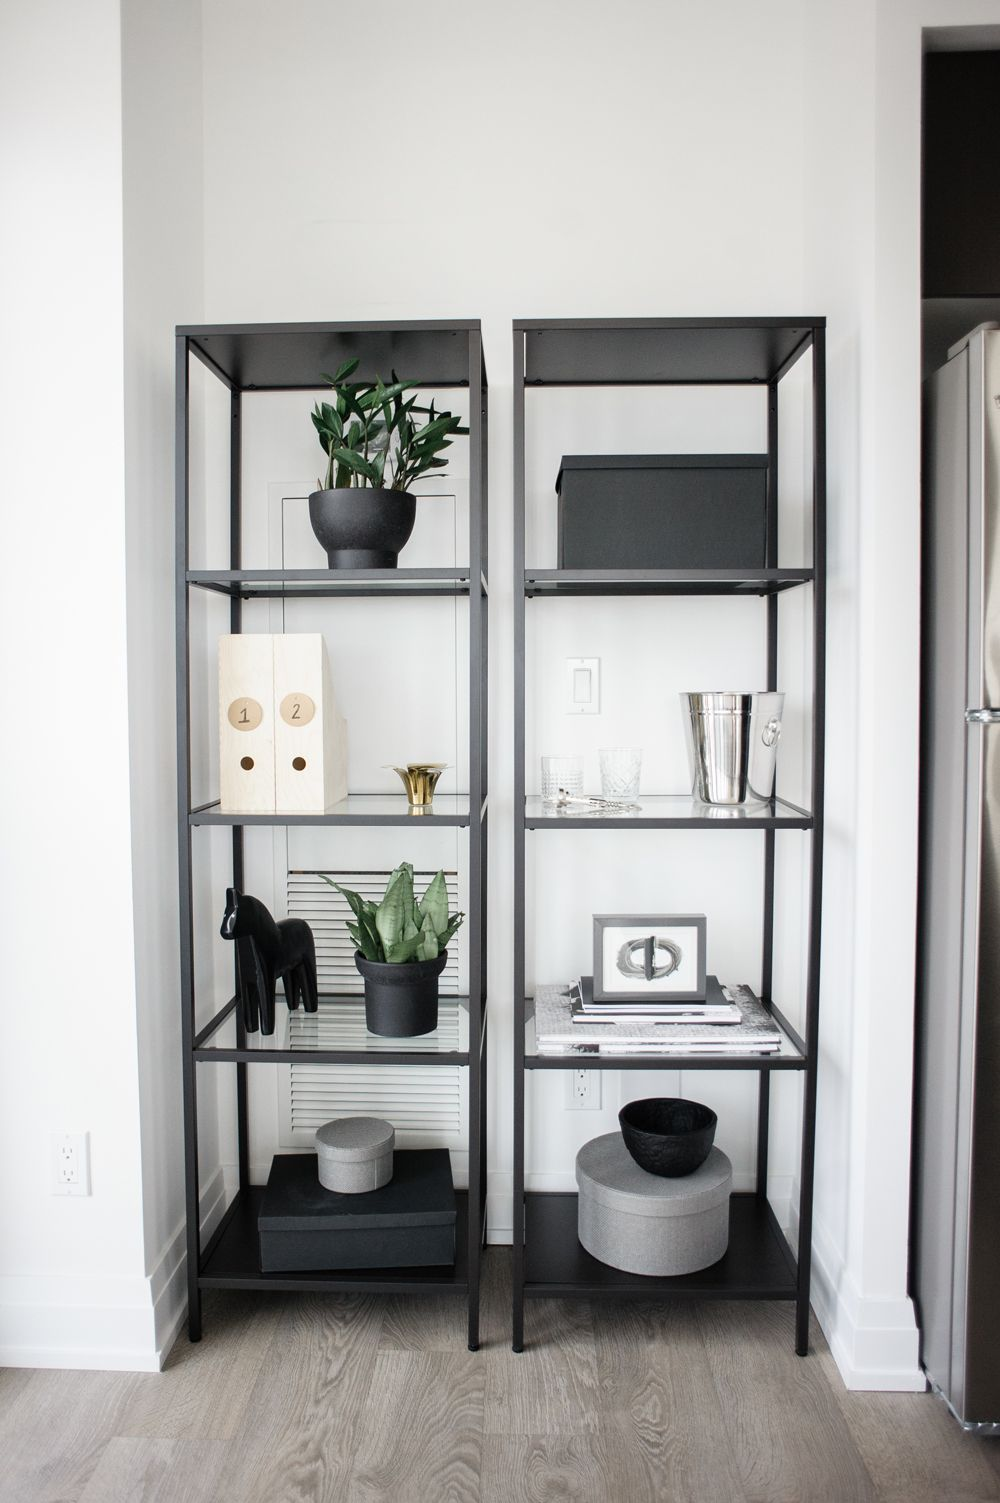 This Chill Condo Proves You're Never Too Old for IKEA